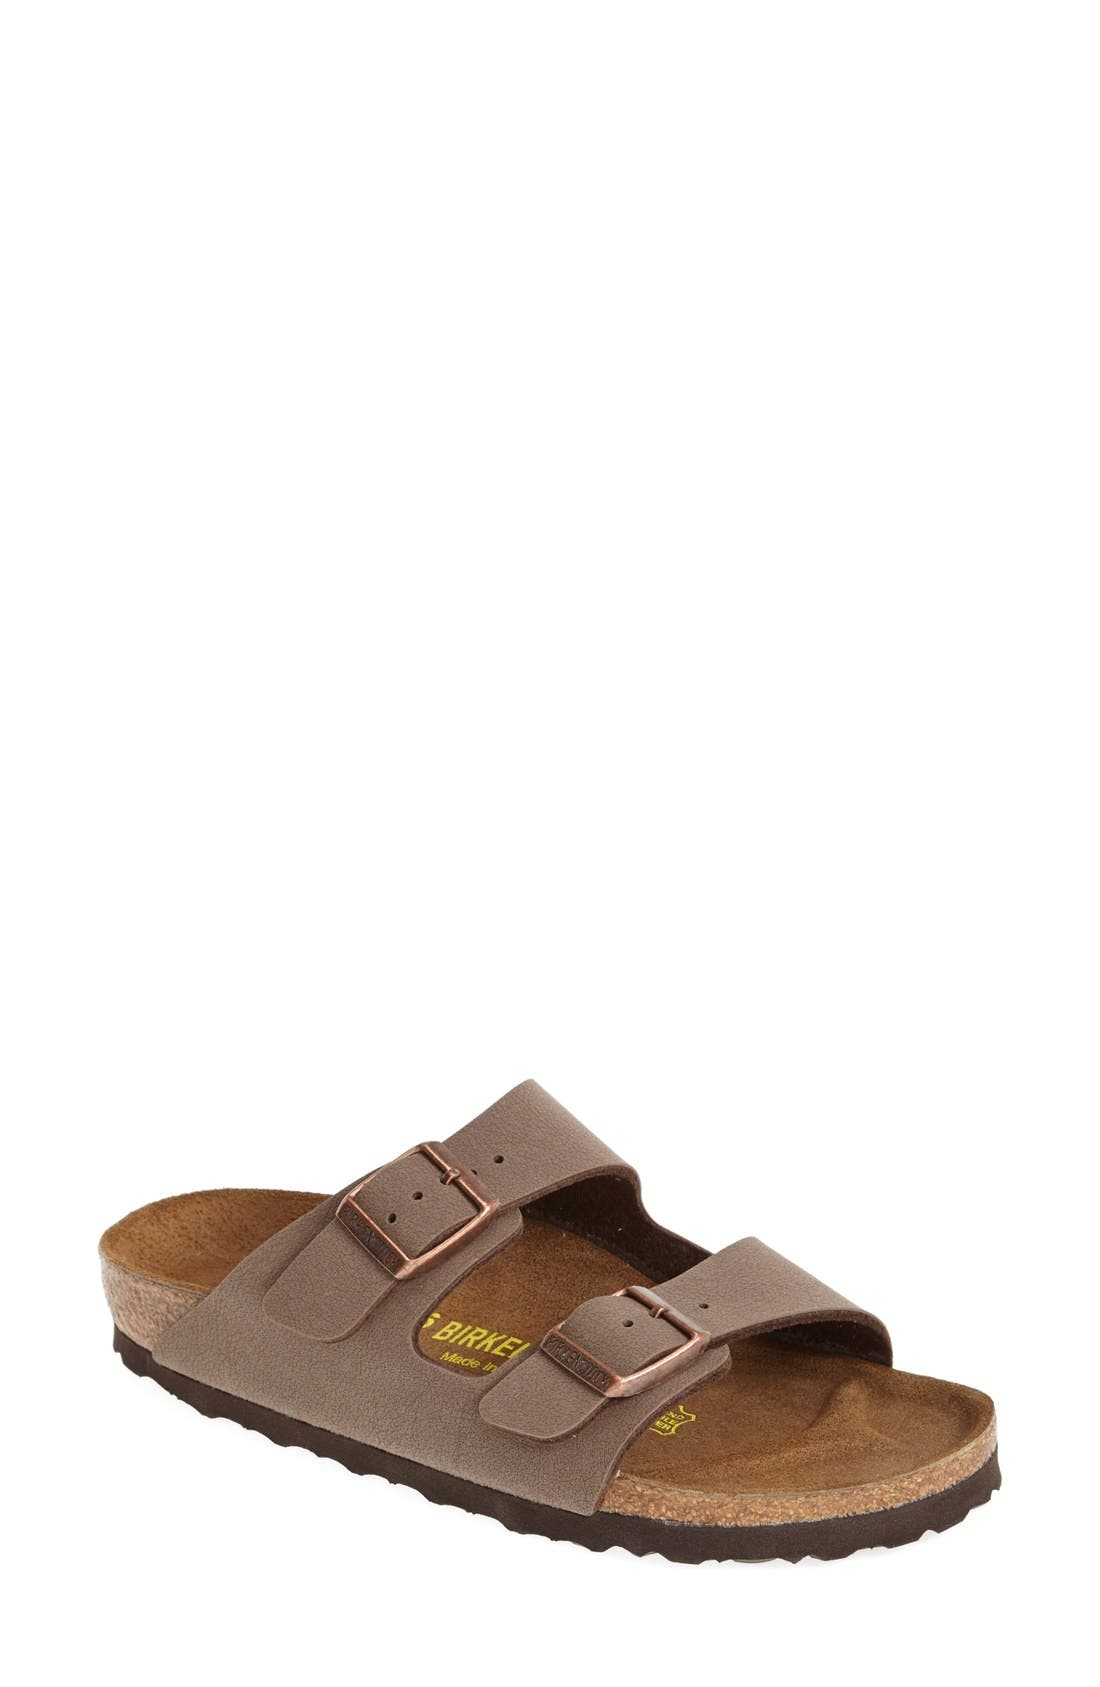 Arizona Birko-Flor Sandal,                         Main,                         color, Mocha